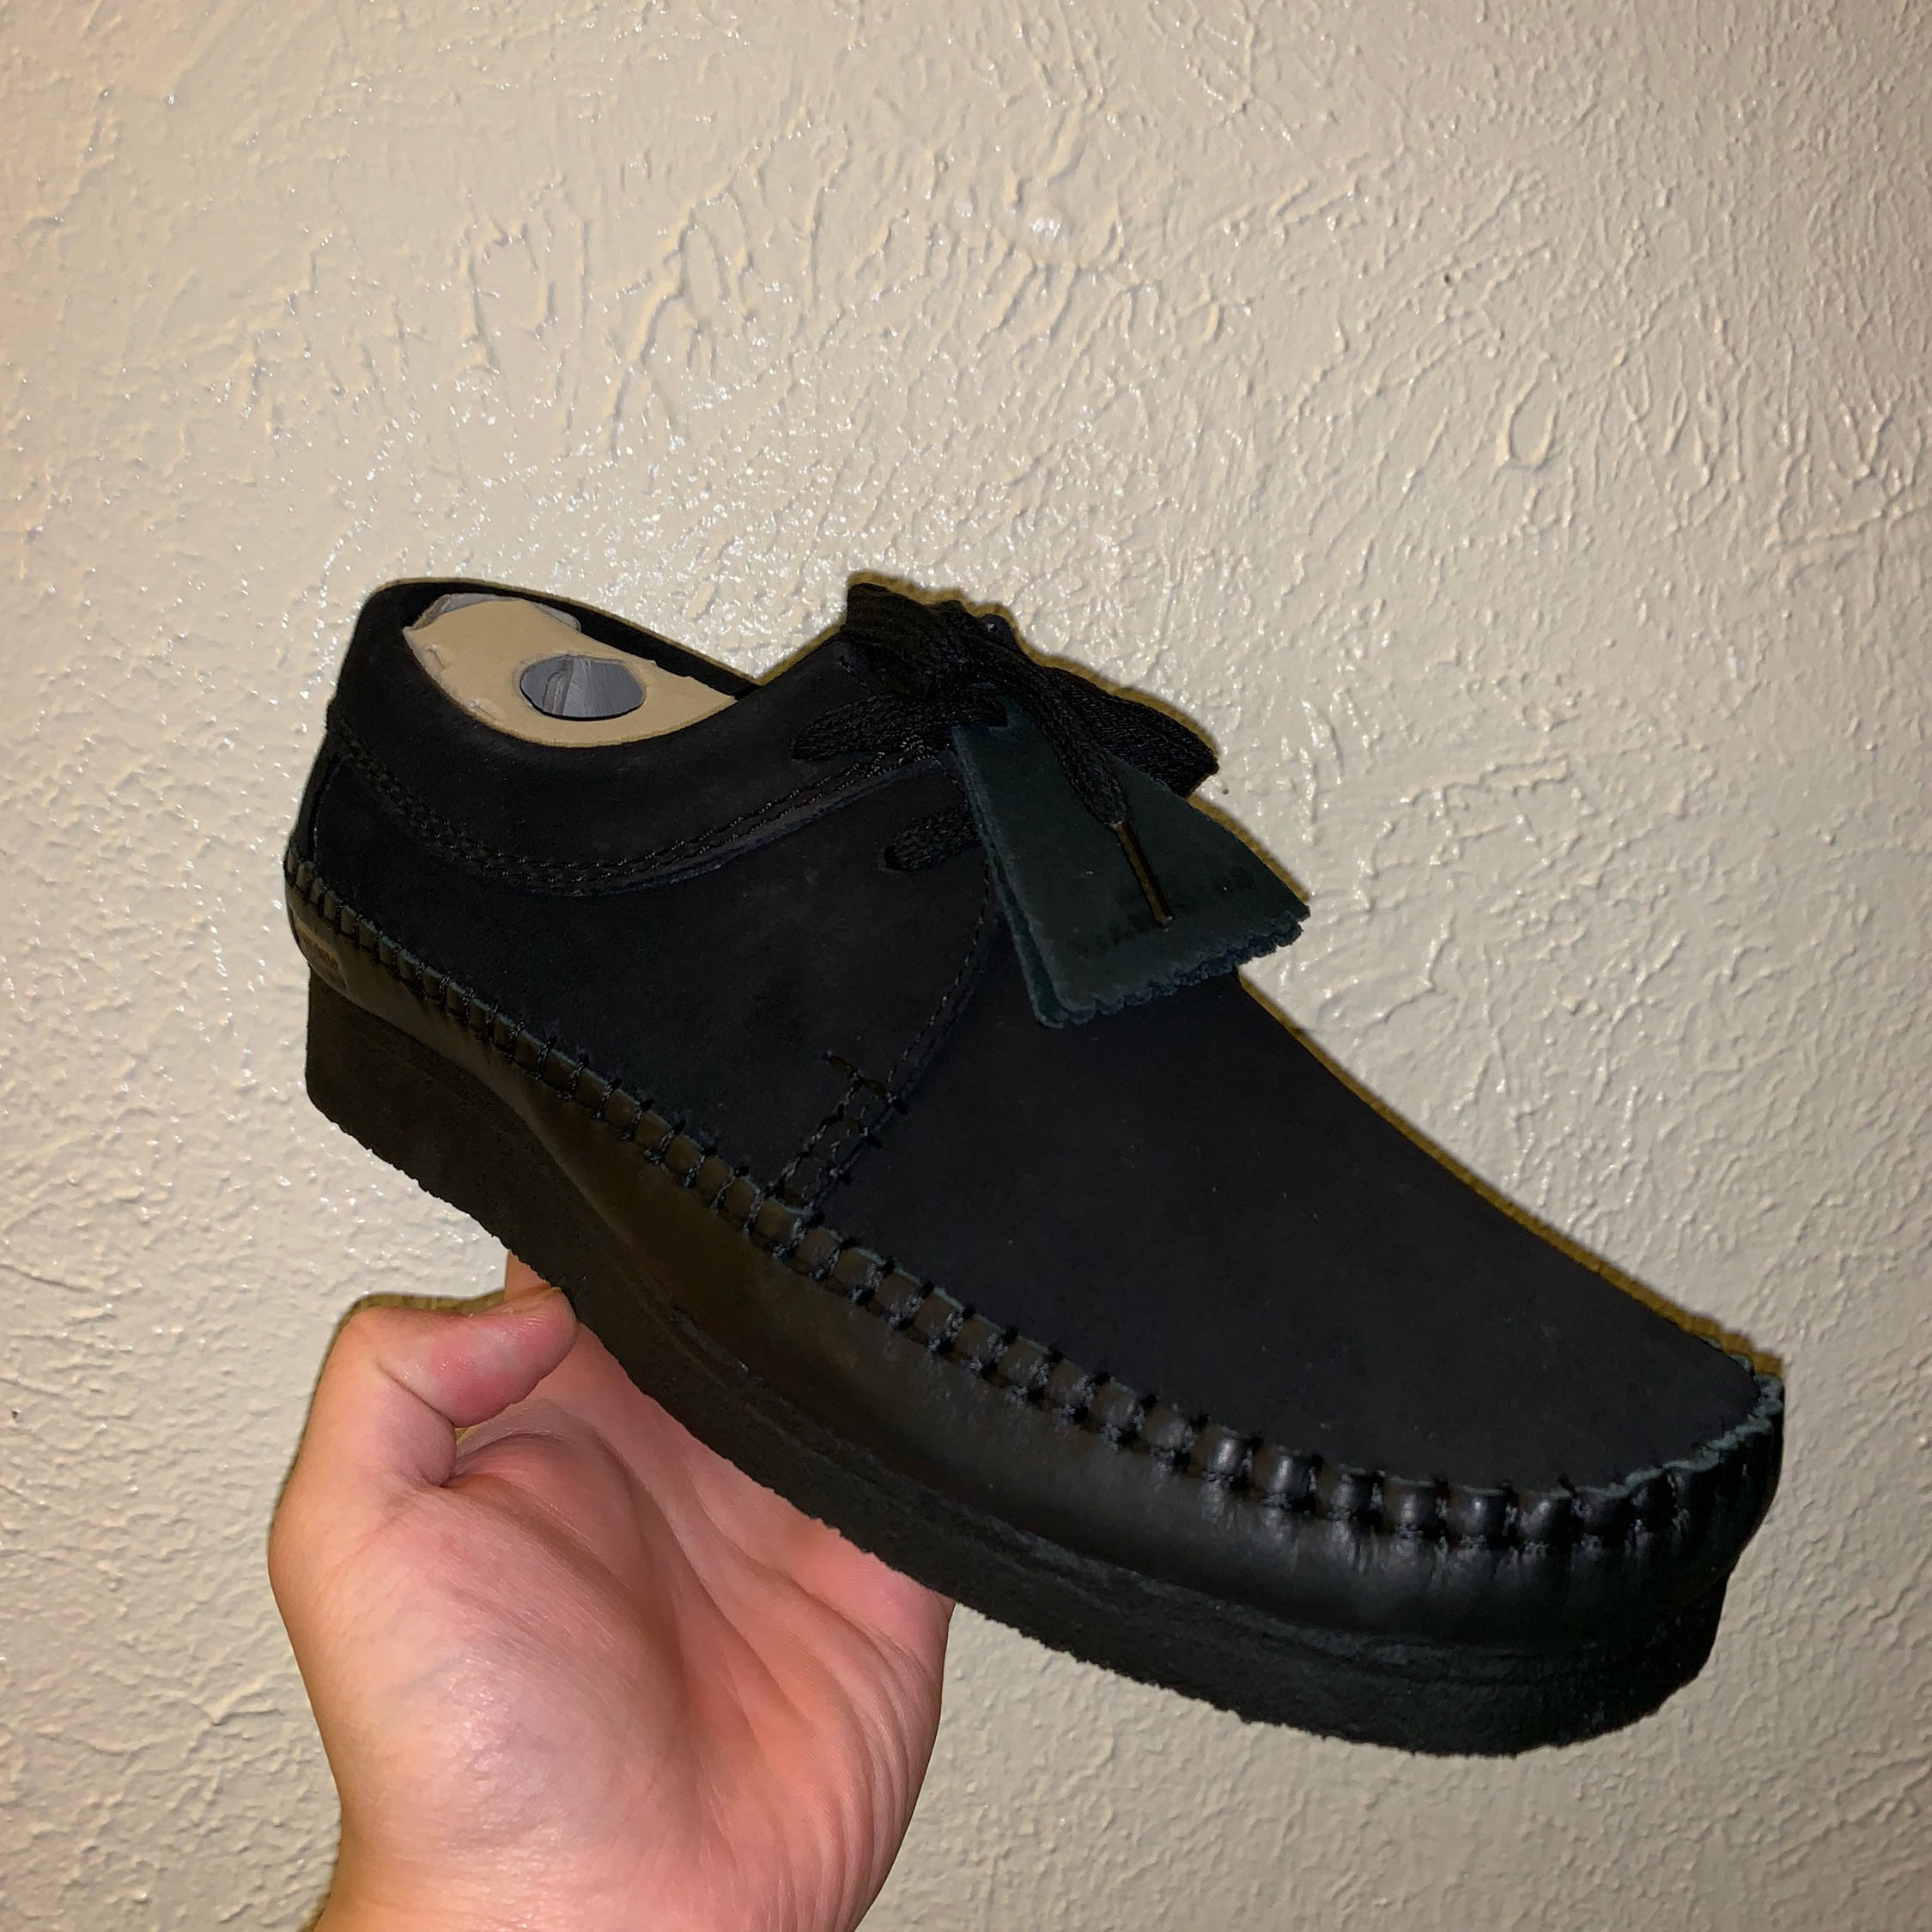 50-70%off limited guantity newest style Supreme X Clarks Weaver In Black Size 9.5 Us